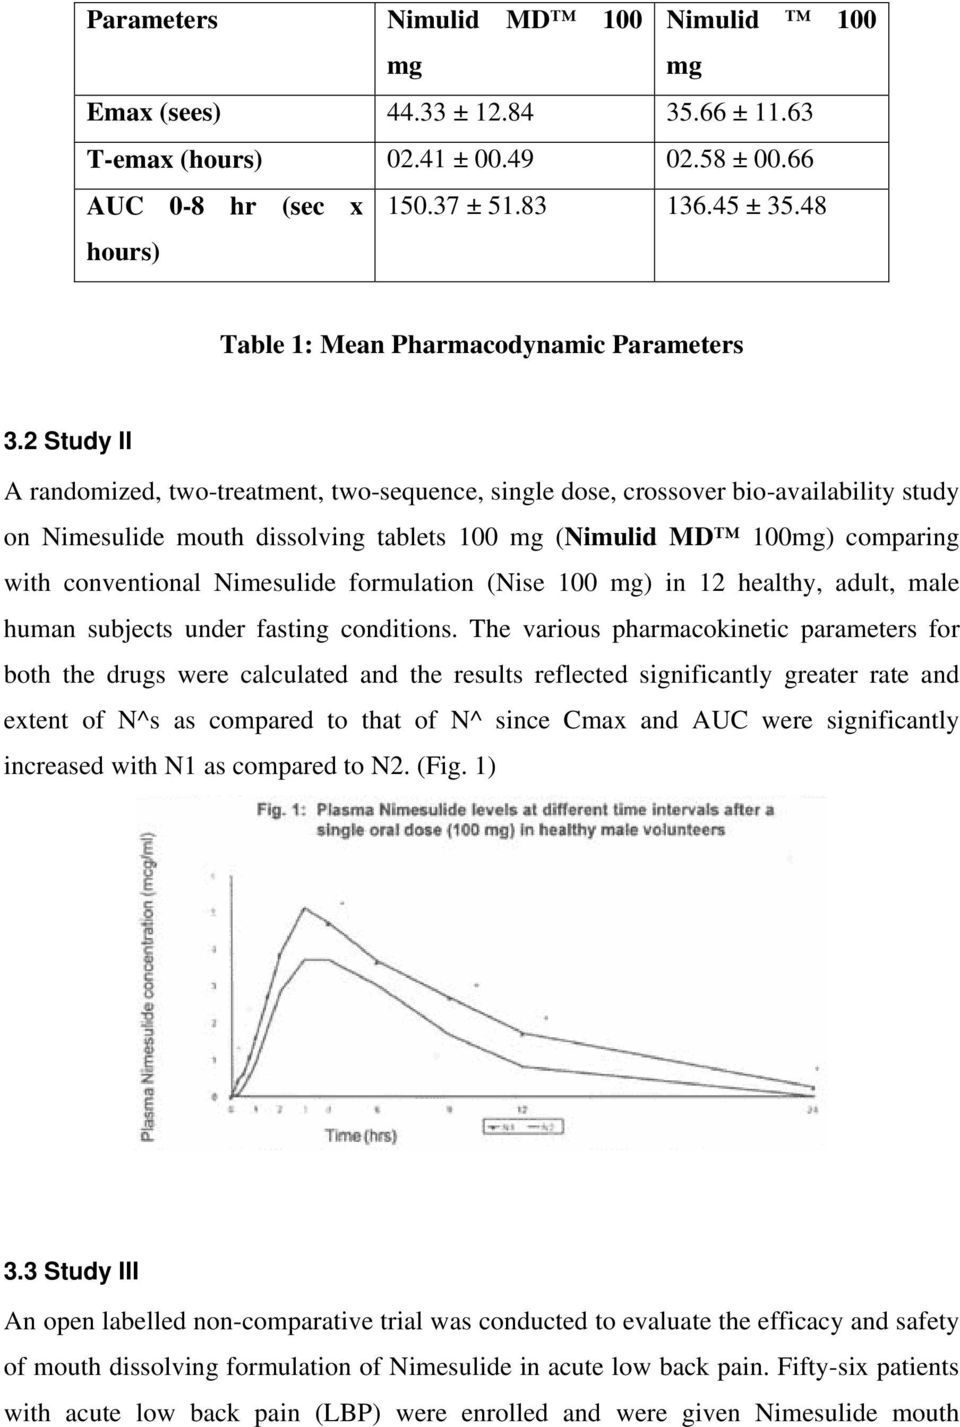 2 Study II A randomized, two-treatment, two-sequence, single dose, crossover bio-availability study on Nimesulide mouth dissolving tablets 100 mg (Nimulid MD 100mg) comparing with conventional